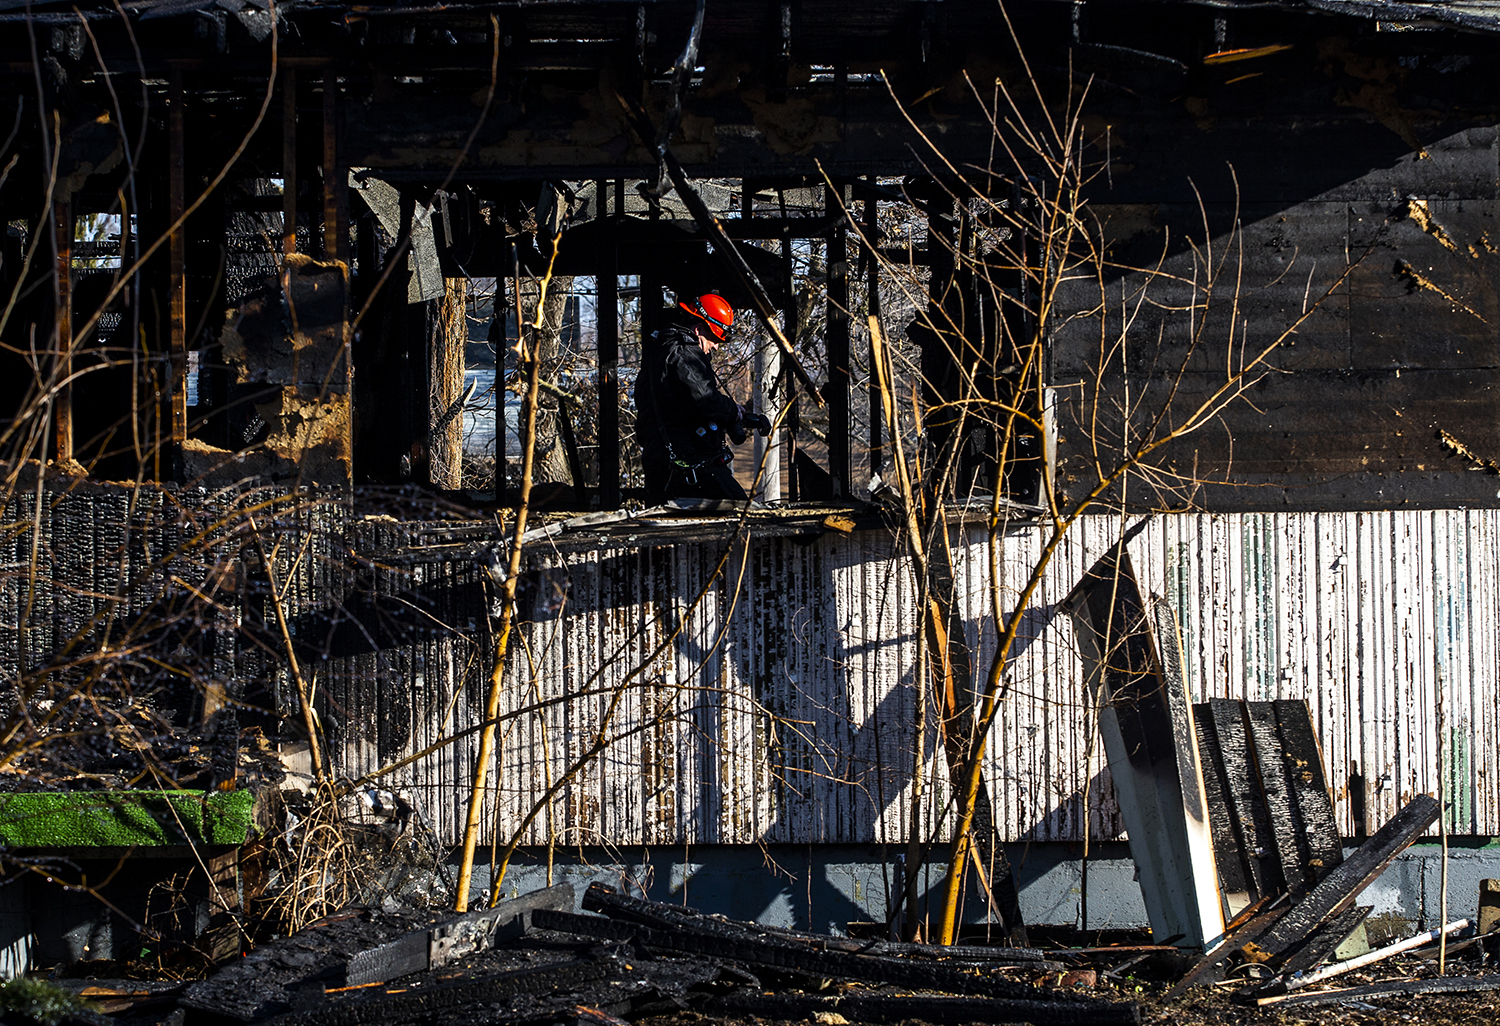 Fire investigators with the Springfield Fire Department go through the remnants of a residential structure destroyed in an early morning fire in the 2000 block of East Brown Street, Monday, March 18, 2019, in Springfield, Ill. [Justin L. Fowler/The State Journal-Register]